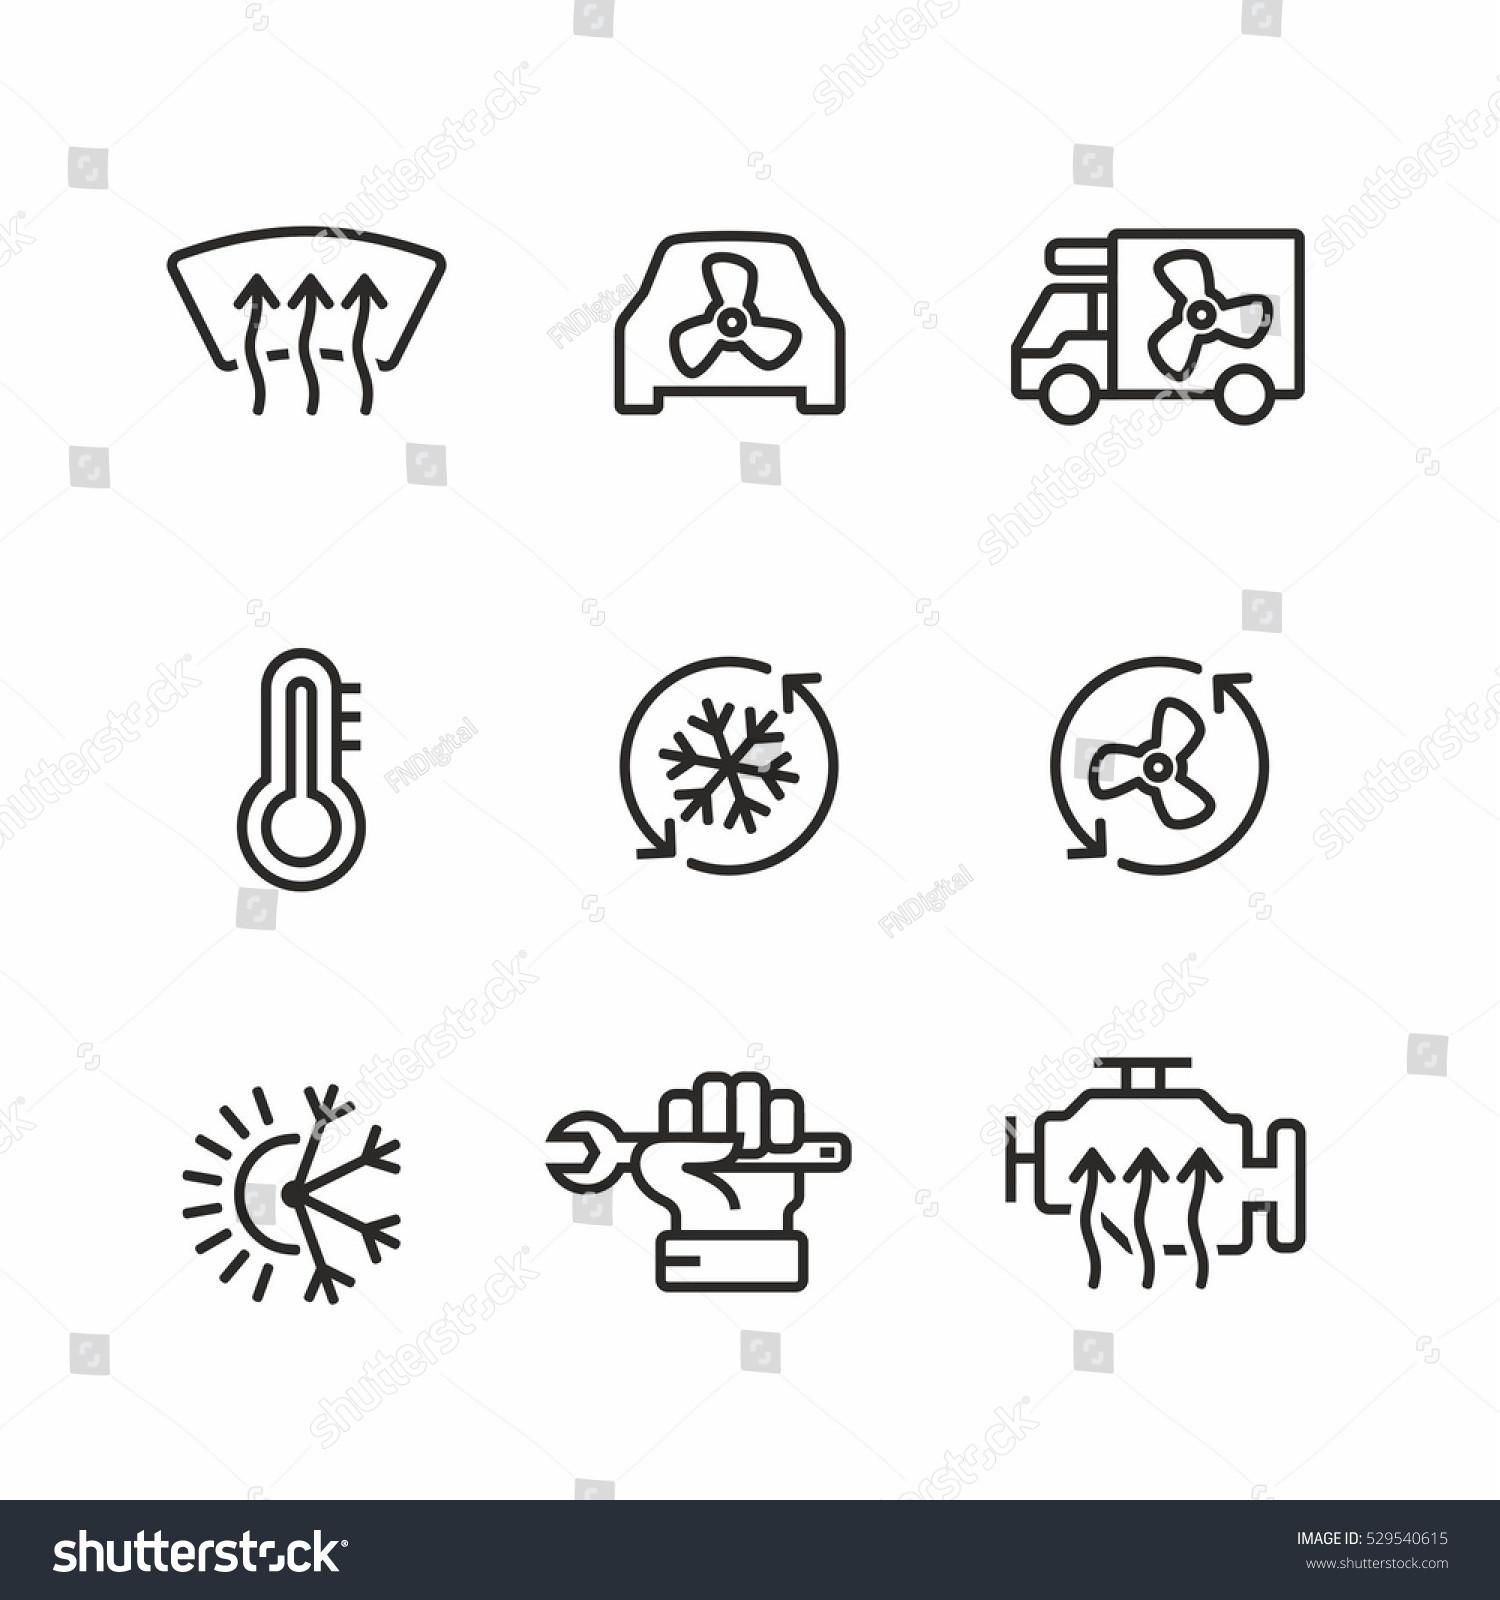 car air conditioning icon. car air conditioning icons set icon a